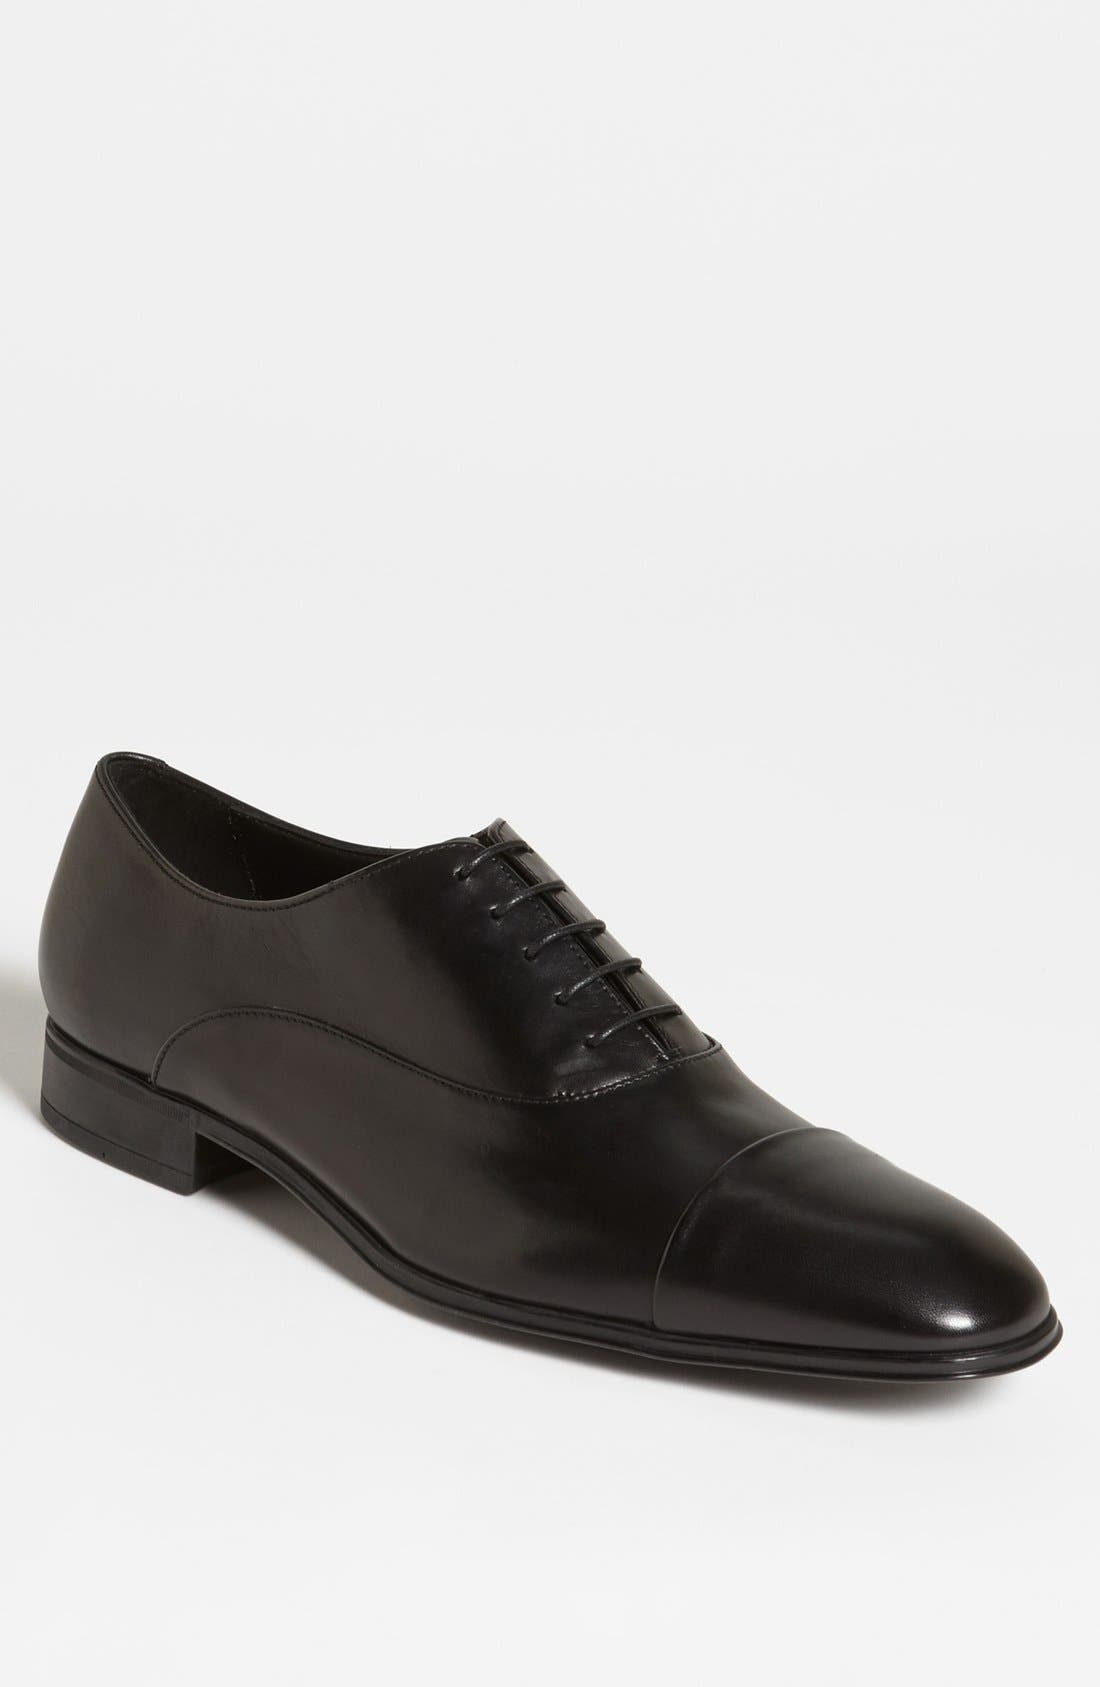 Alternate Image 1 Selected - Salvatore Ferragamo 'Fantino' Oxford